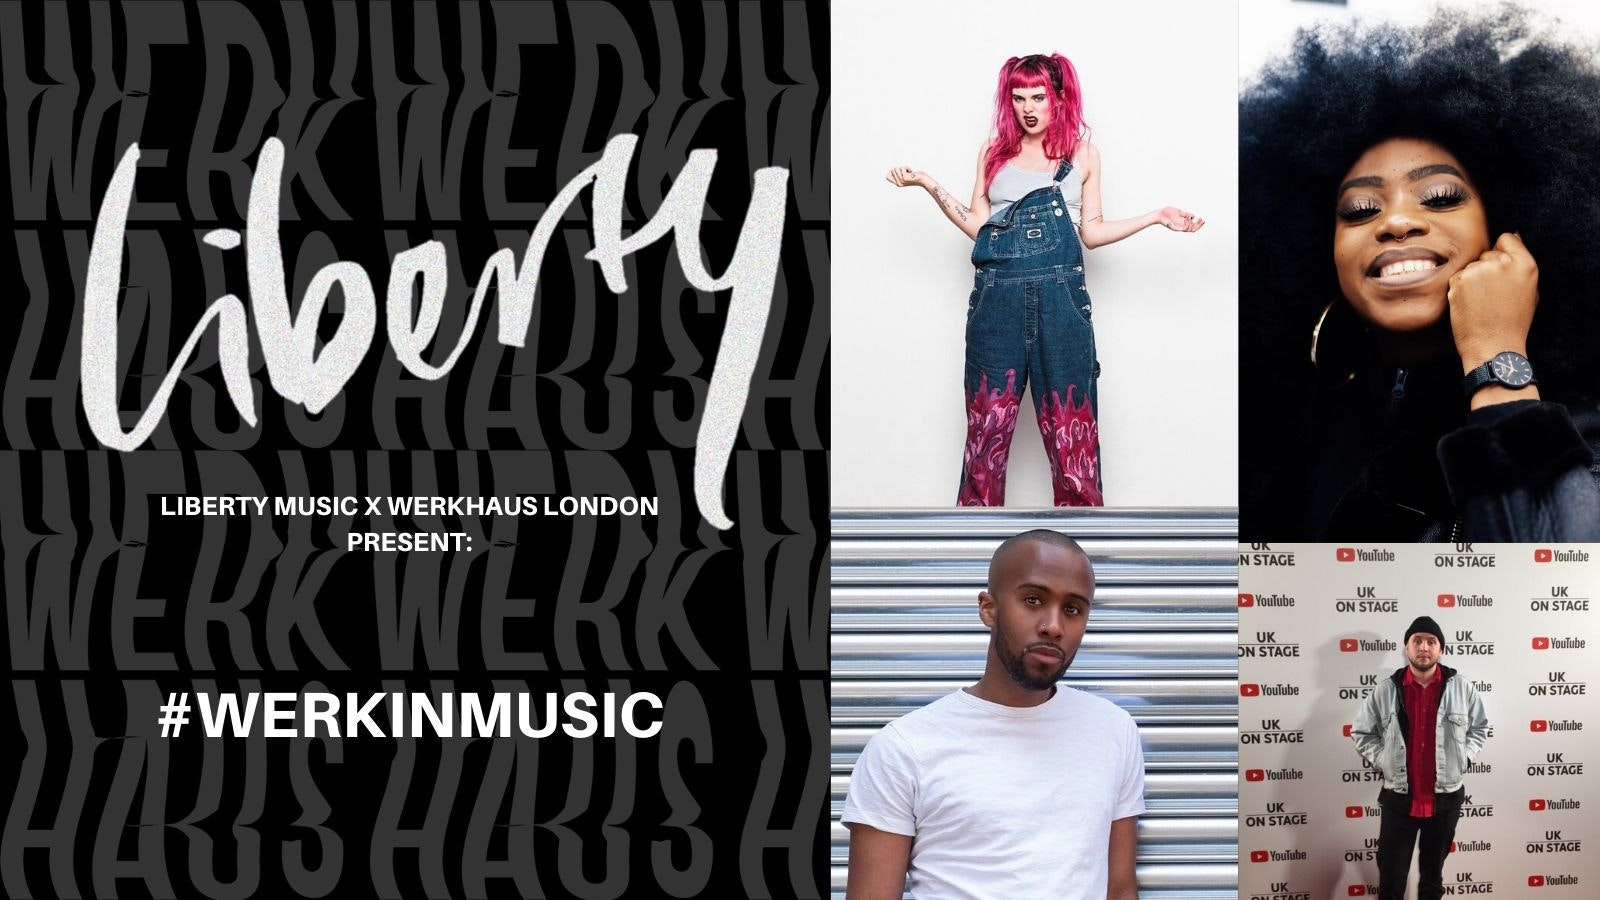 Liberty Music x Werkhaus: #WERKINMUSIC